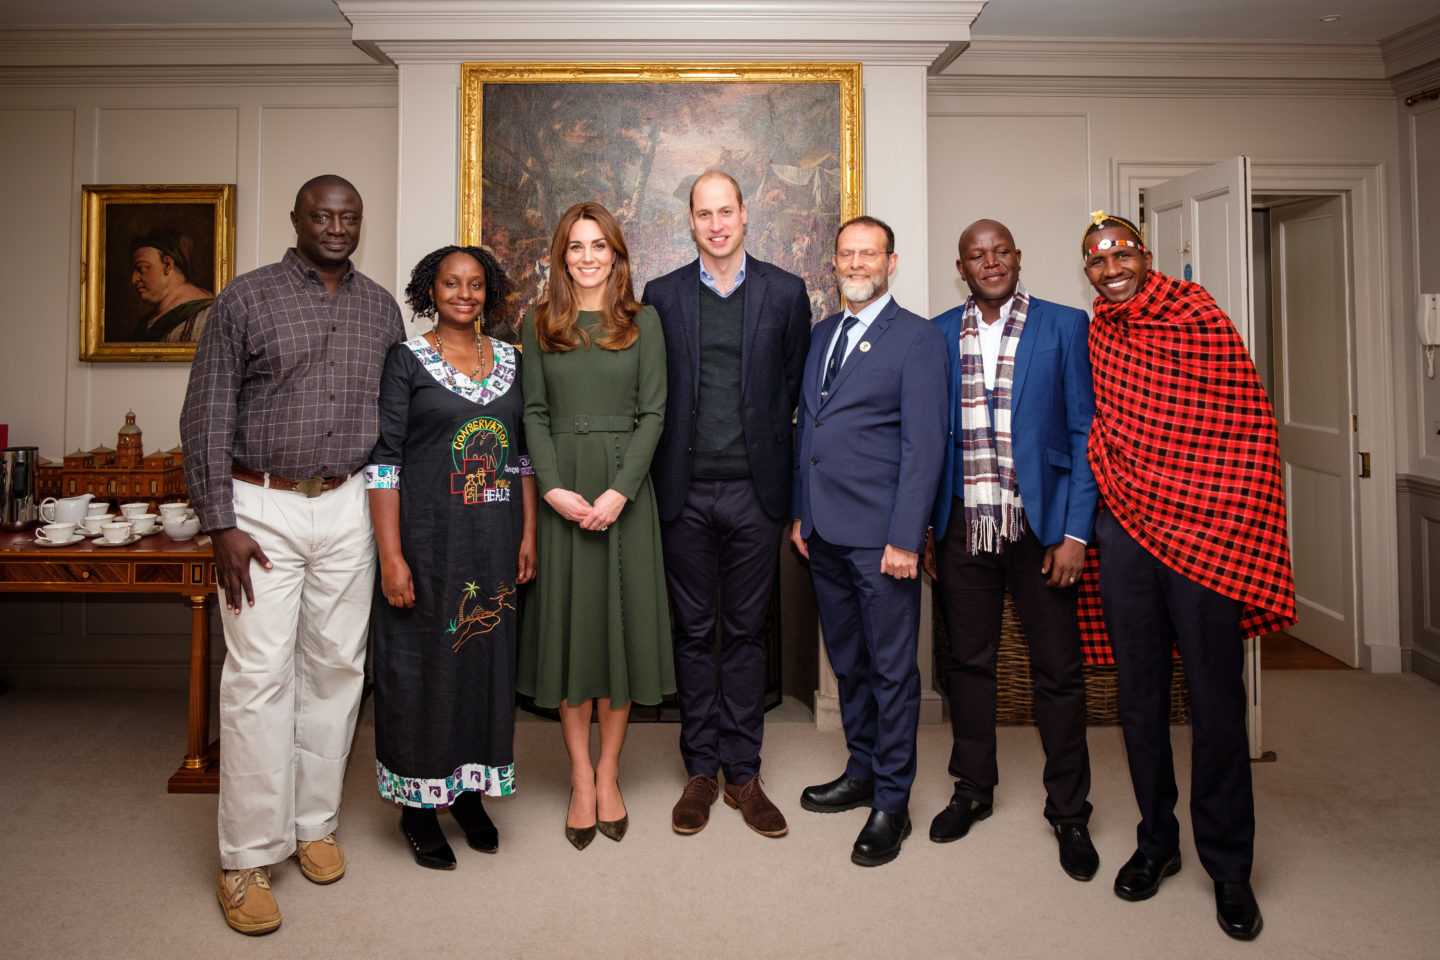 The finalists had the opportunity to meet TRH The Duke and Duchess of Cambridge at Kensington Palace, ahead of the Awards ceremony